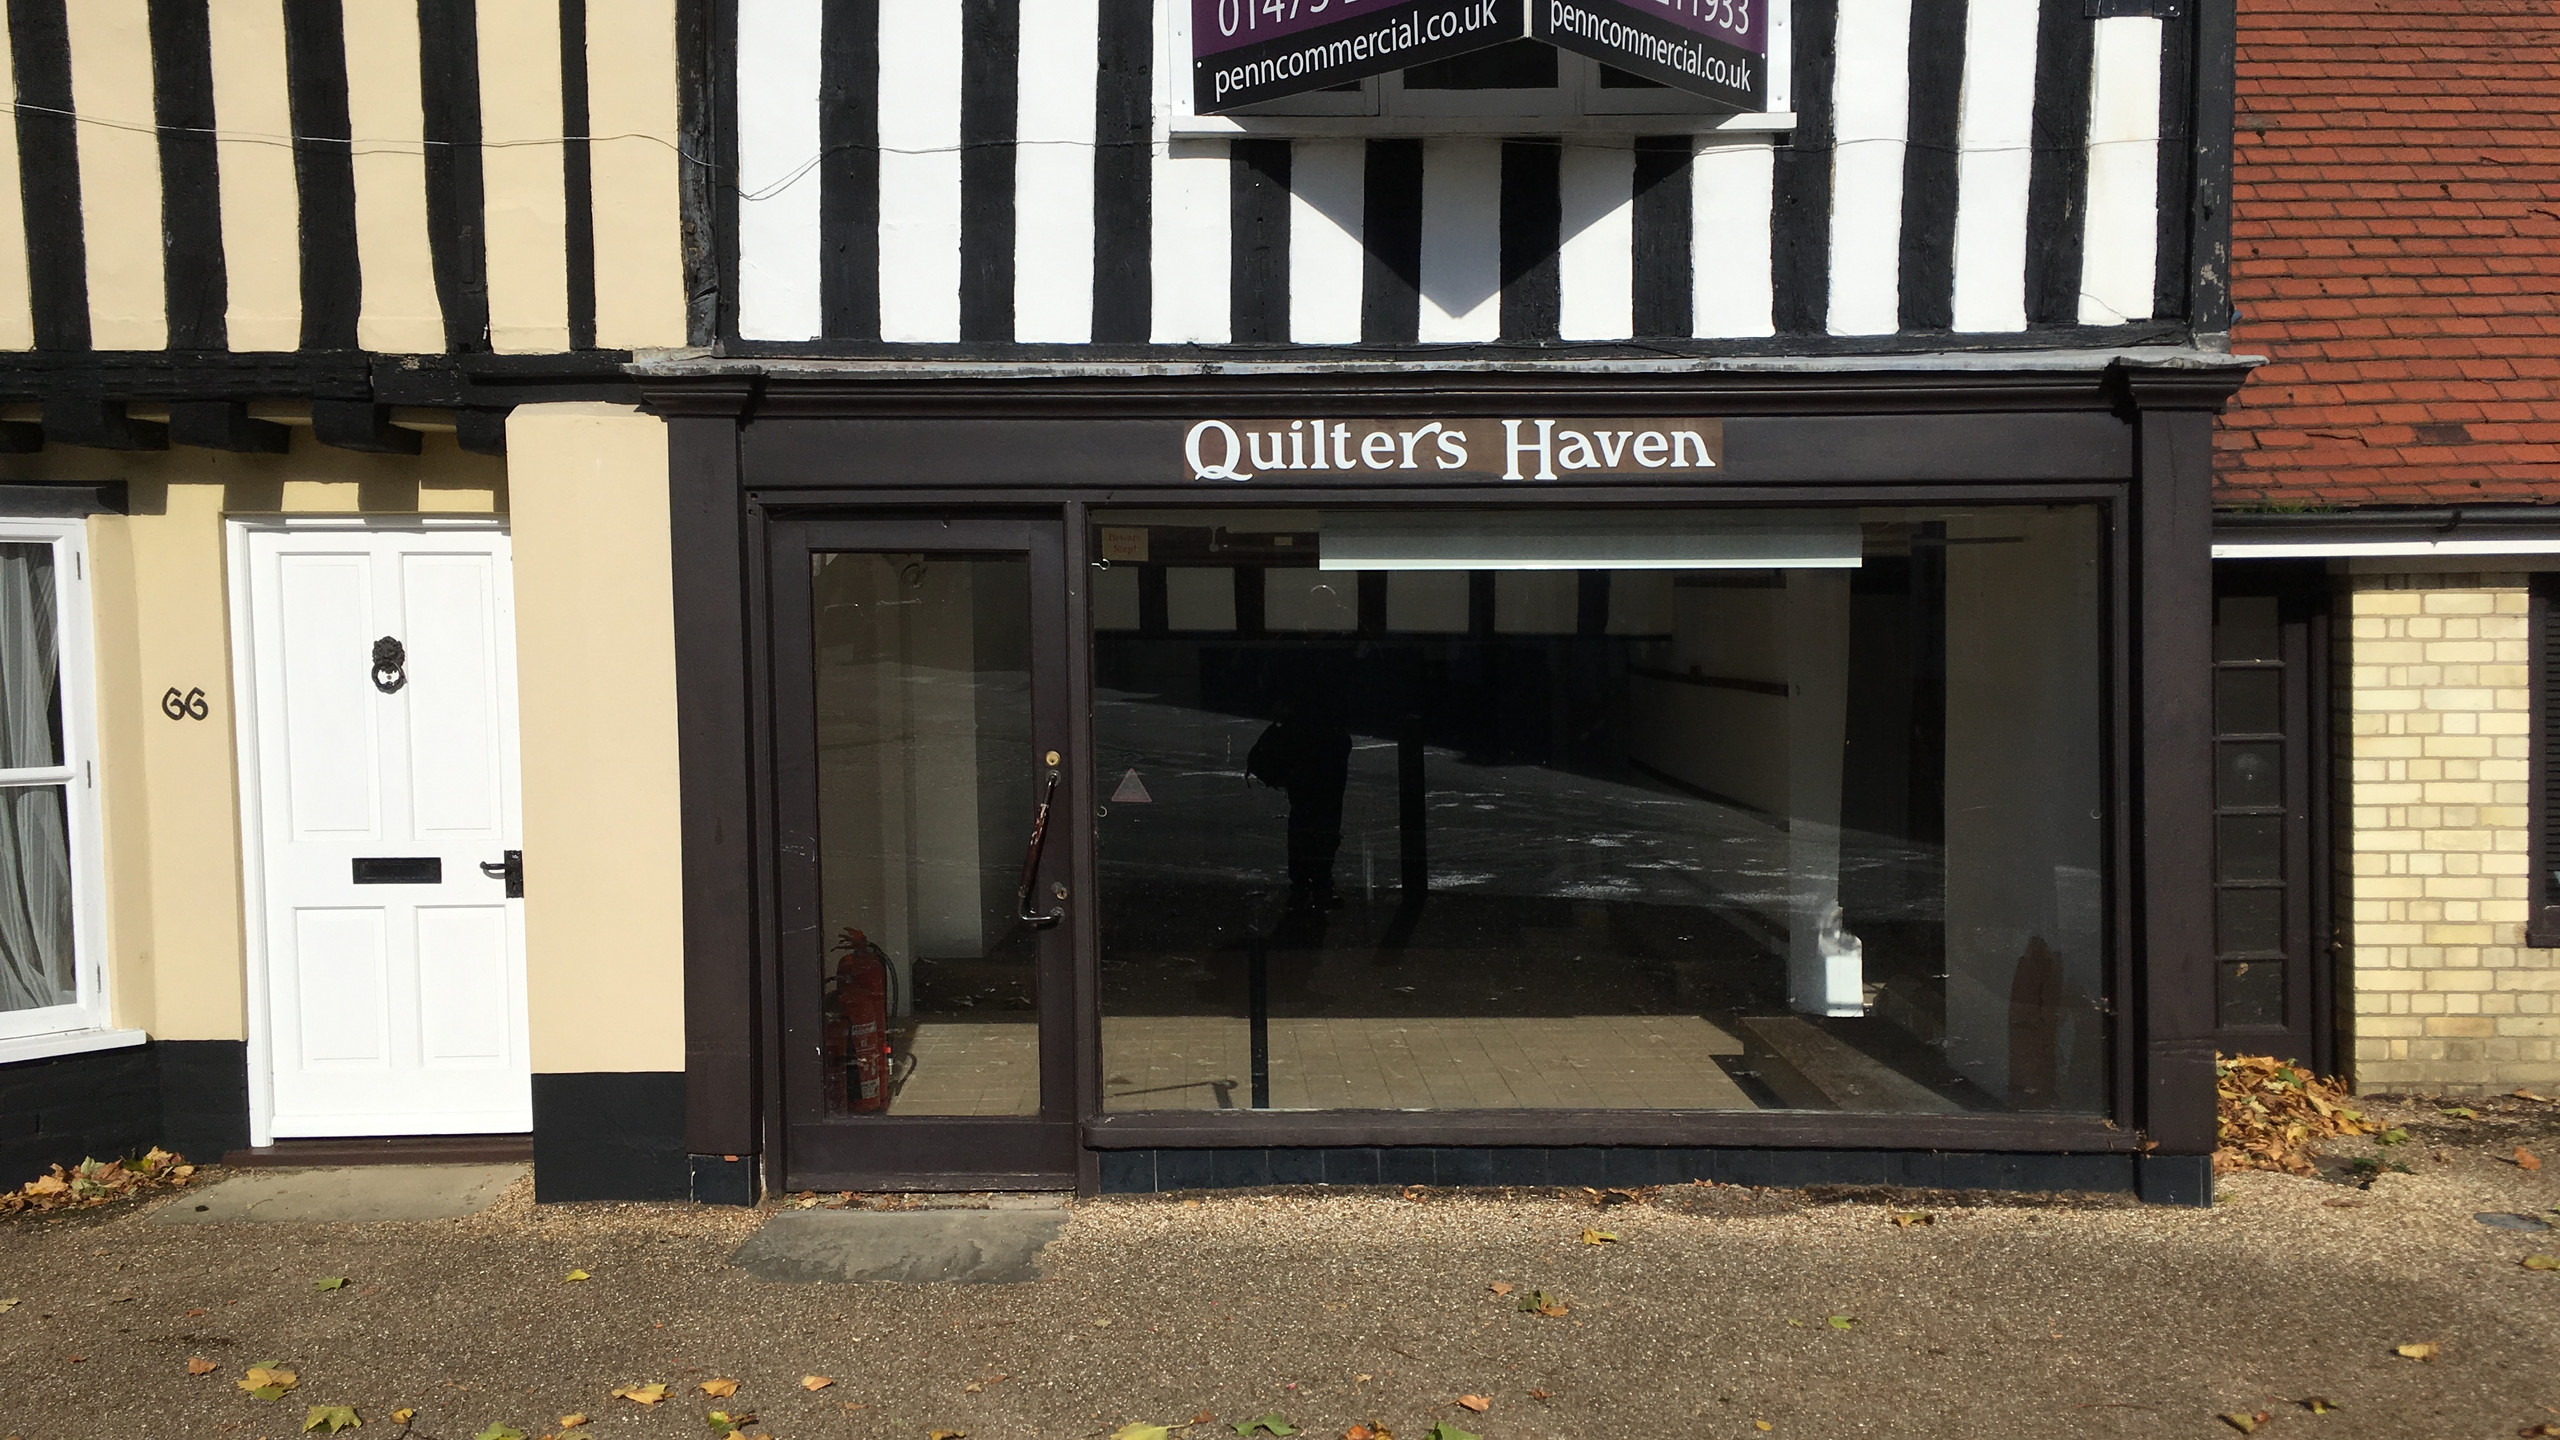 Changing face of Quilters Haven